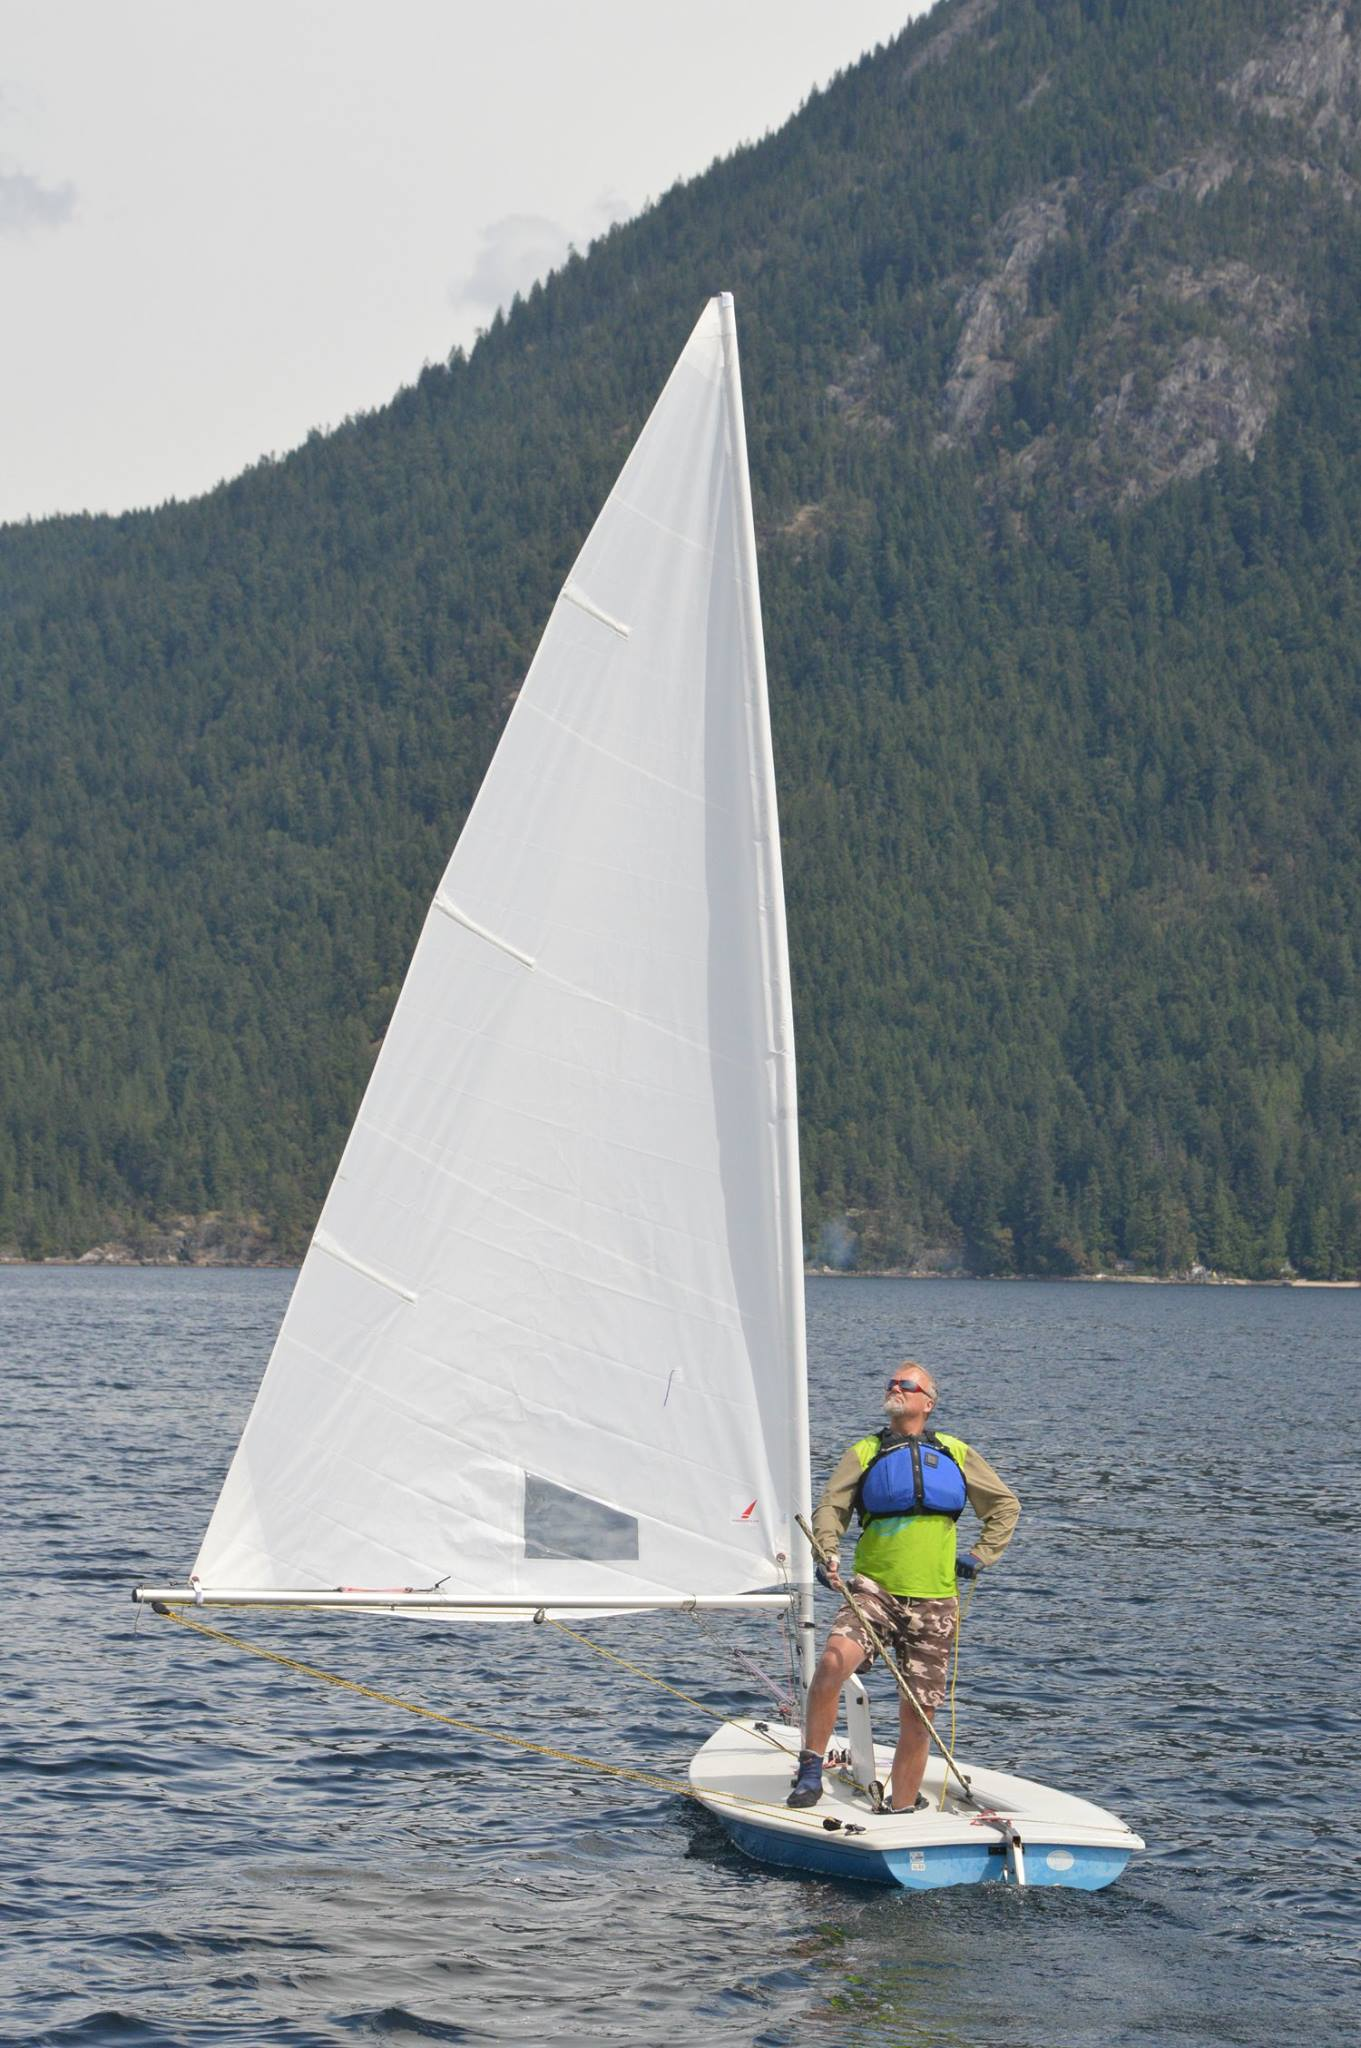 Thomas in light winds with mount richardson in the background.